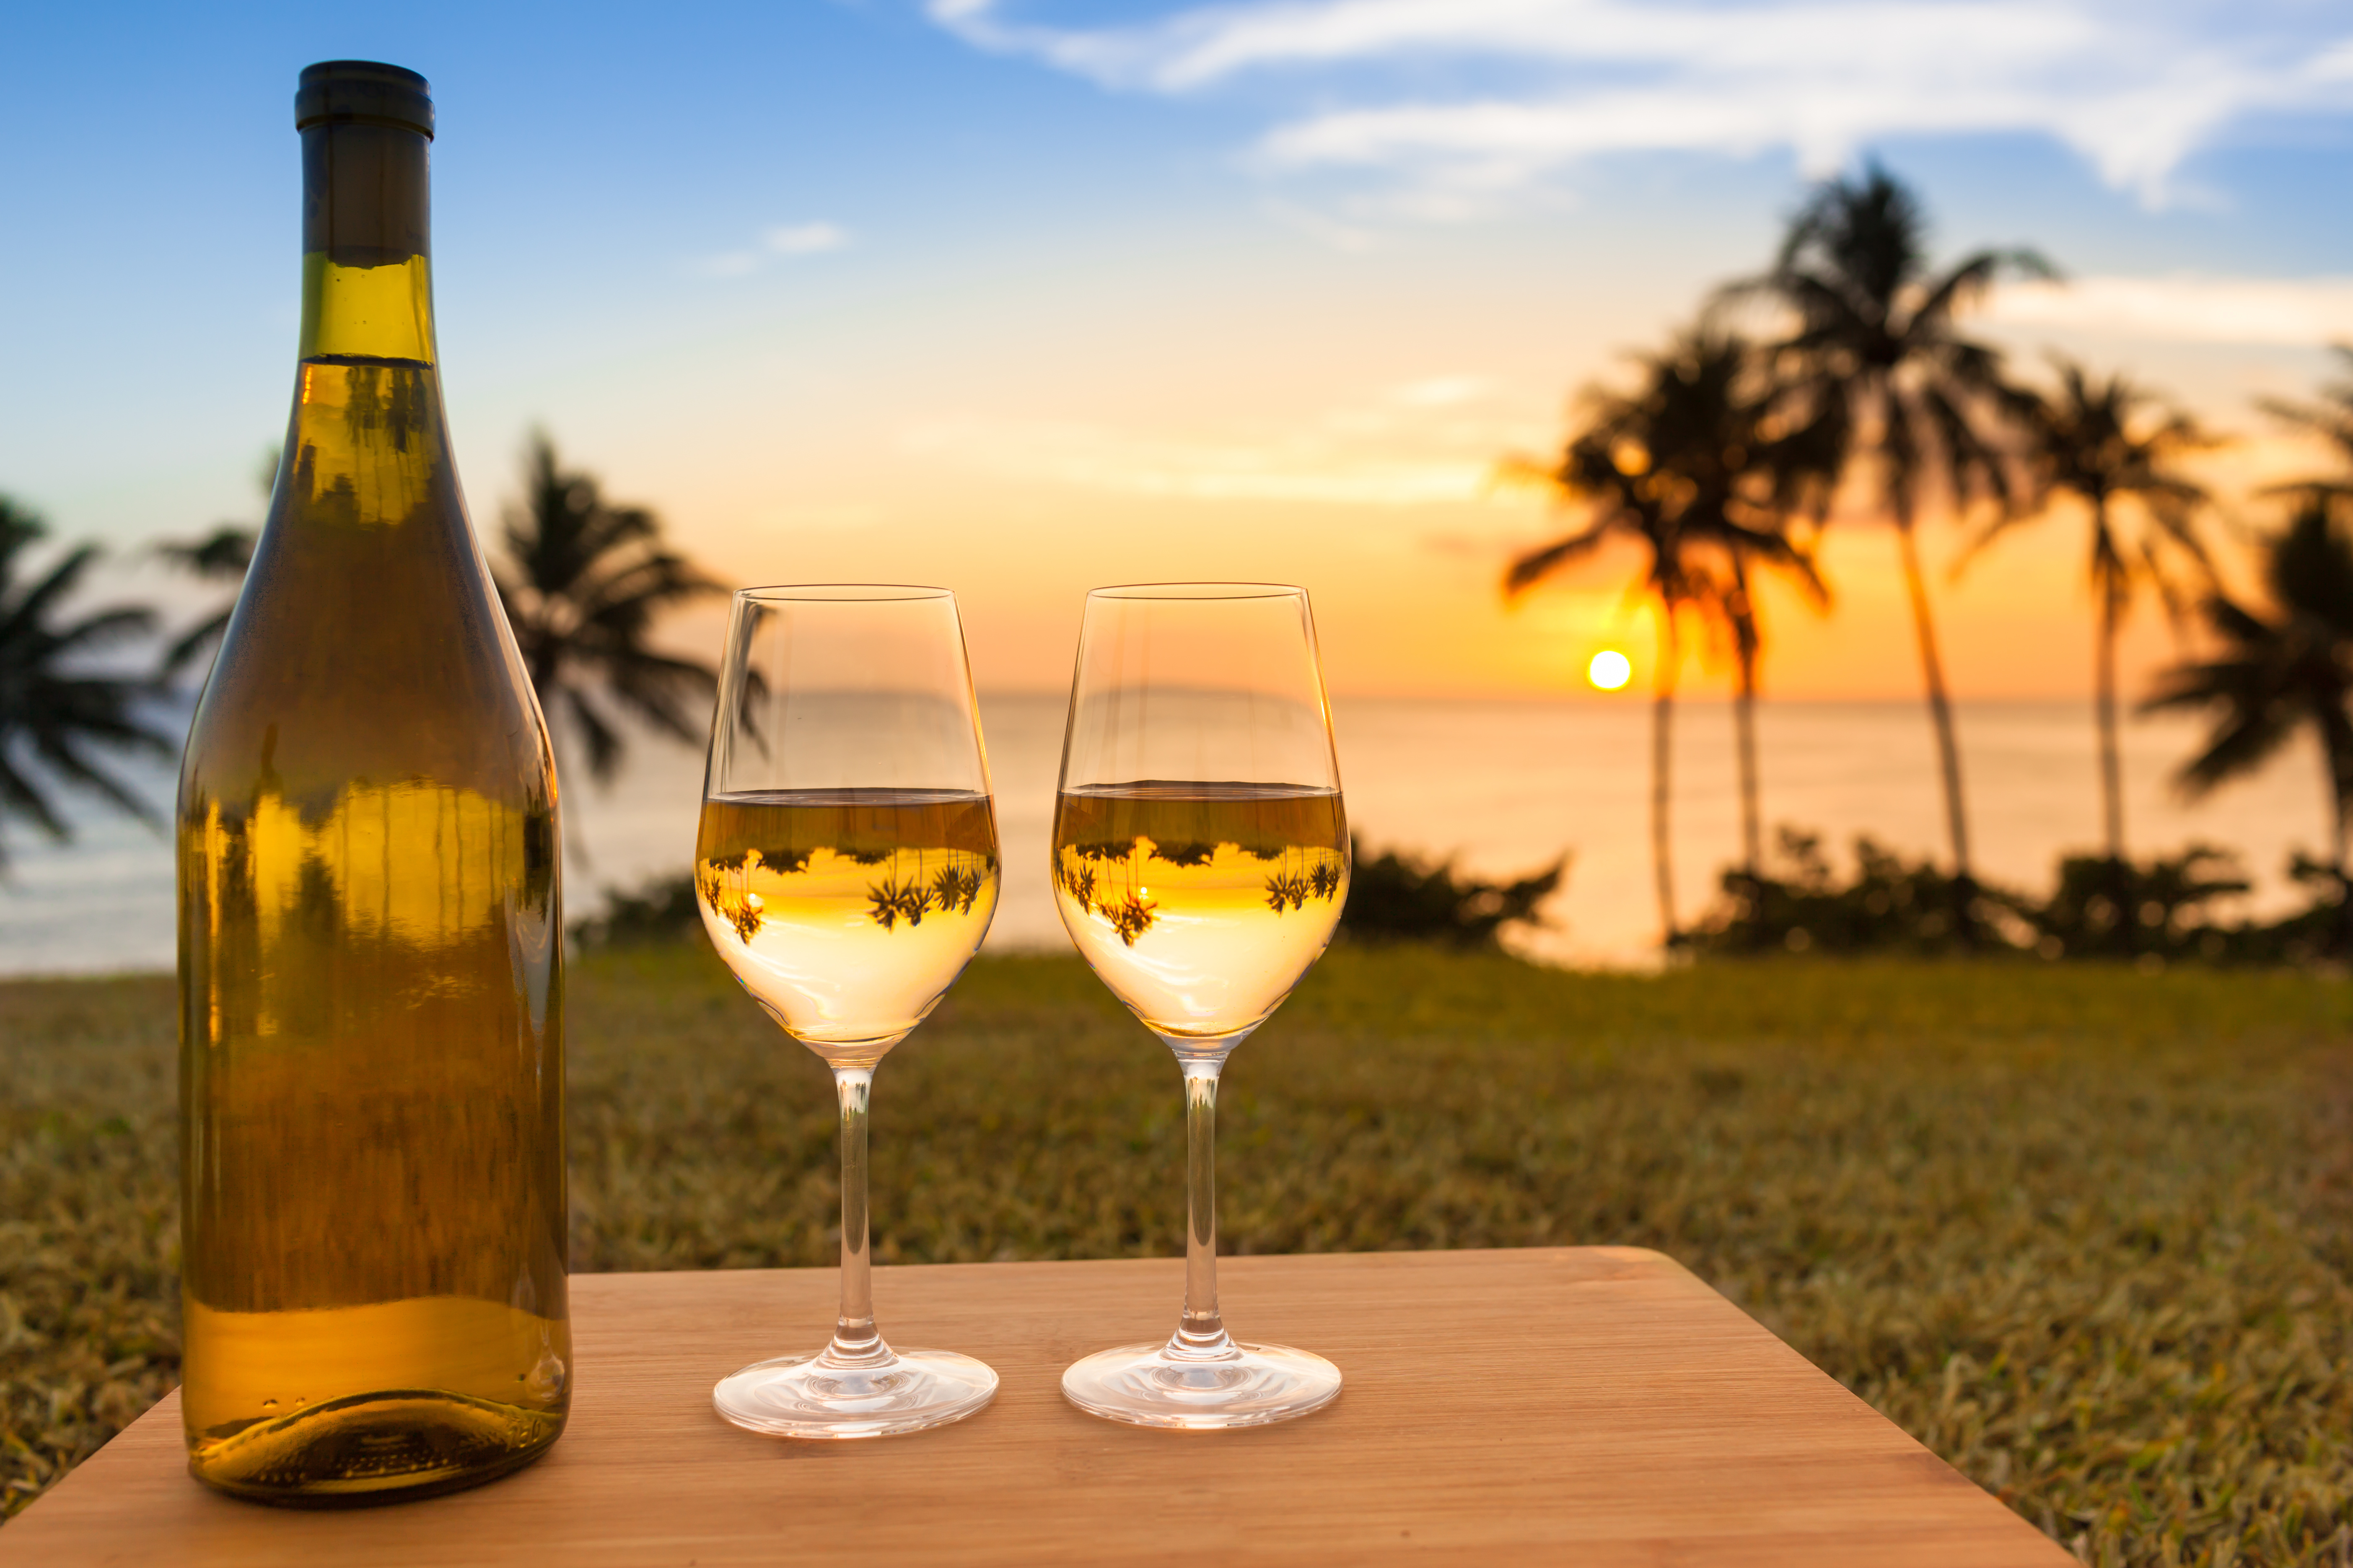 Pair of wine glasses and bottle of wine on a beautiful tropical beach.